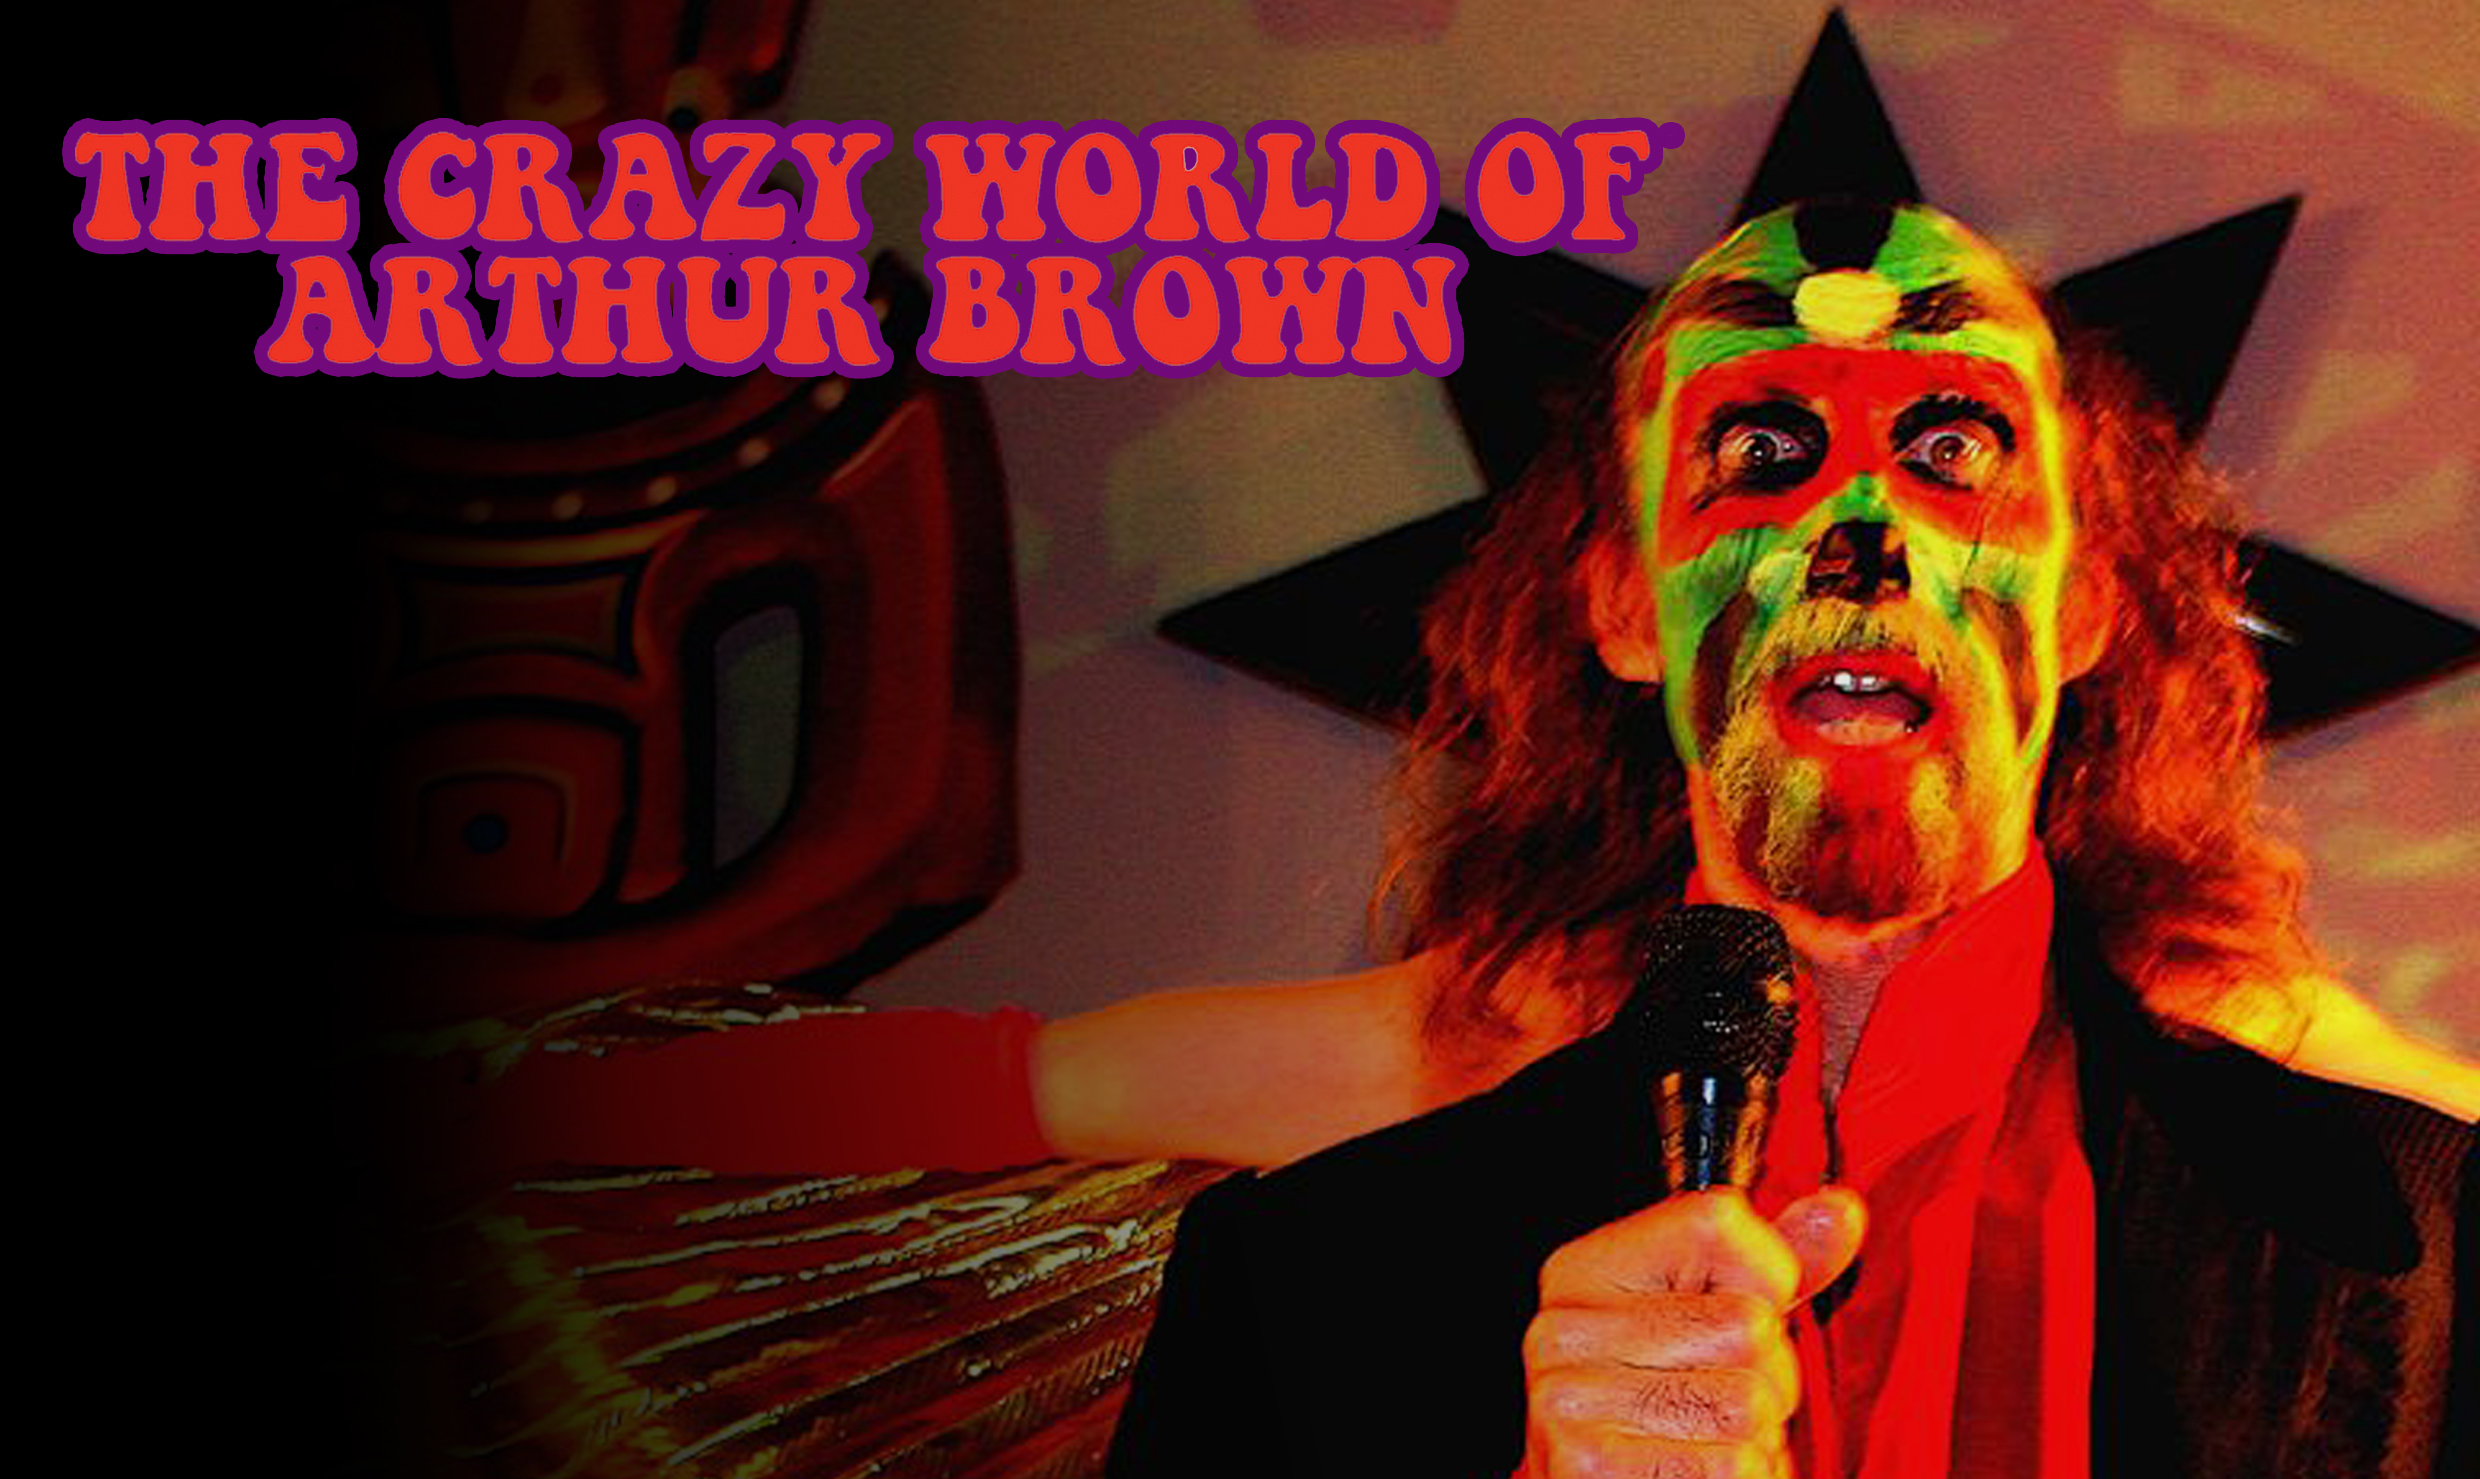 The crazy world of author brown